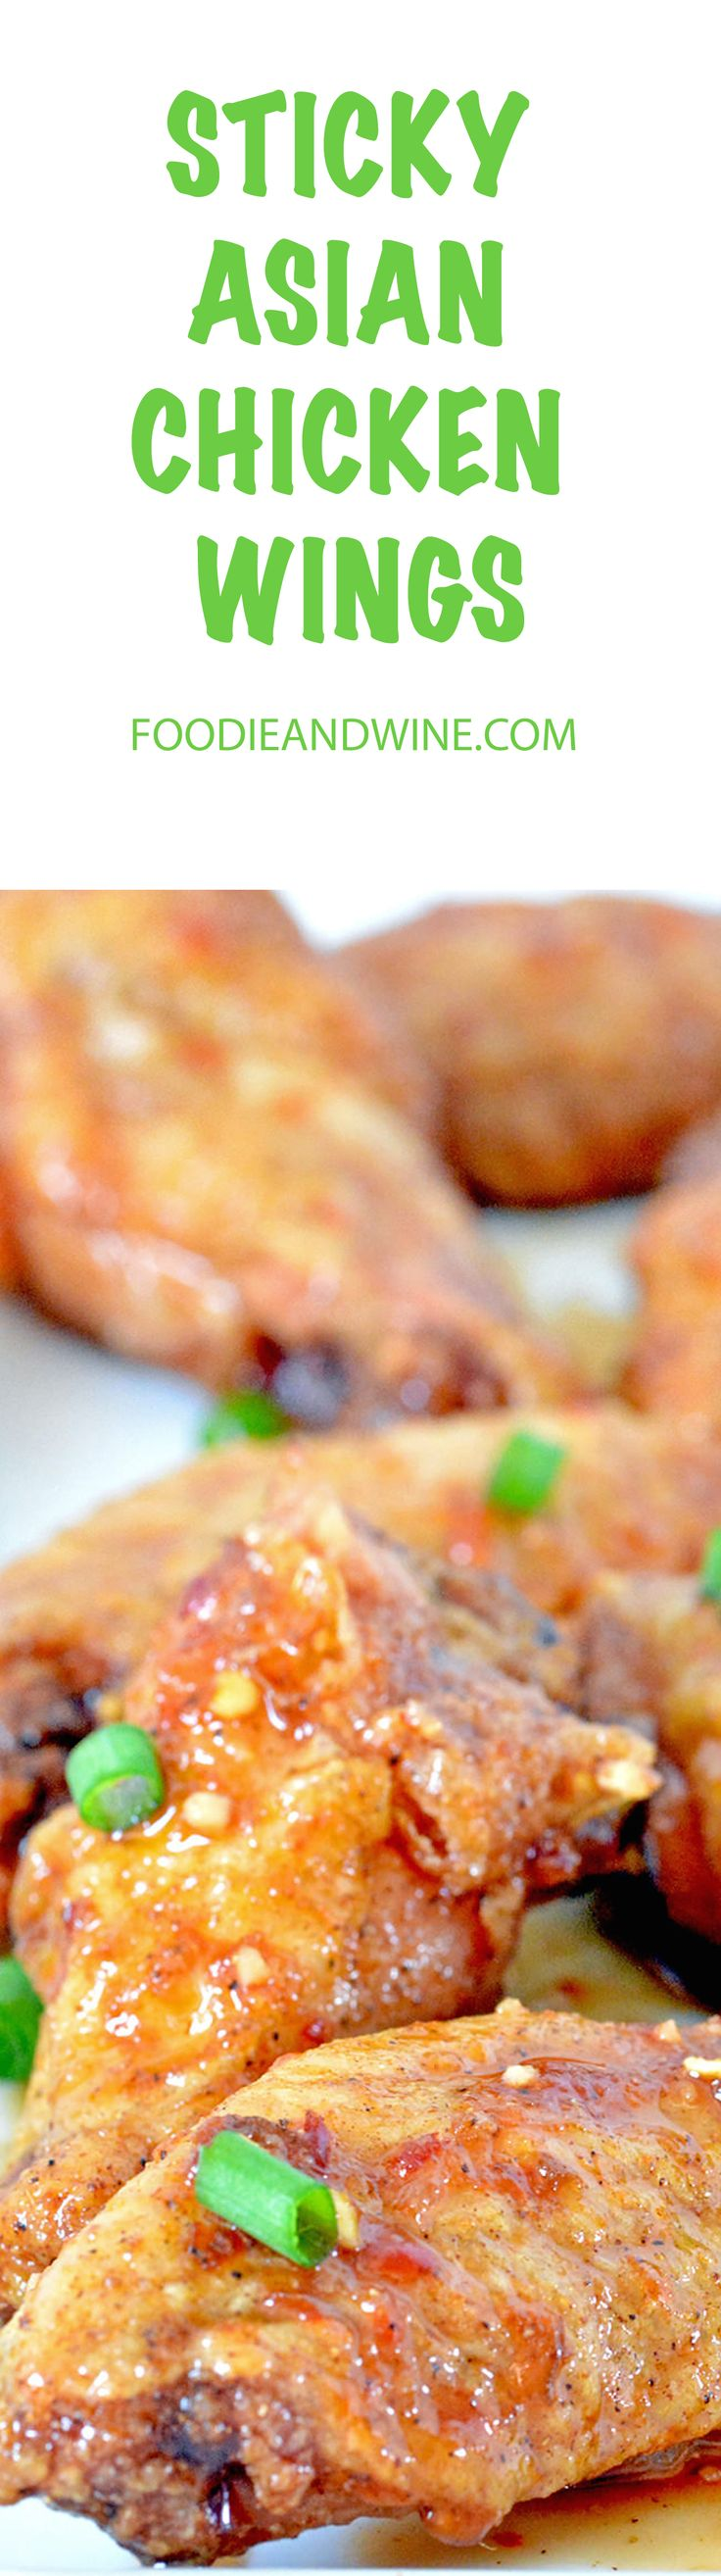 Sticky Asian Oven Baked Chicken Wings! Perfect recipe for football season or holiday parties! Crispy wings covered in honey, soy sauce and garlic.